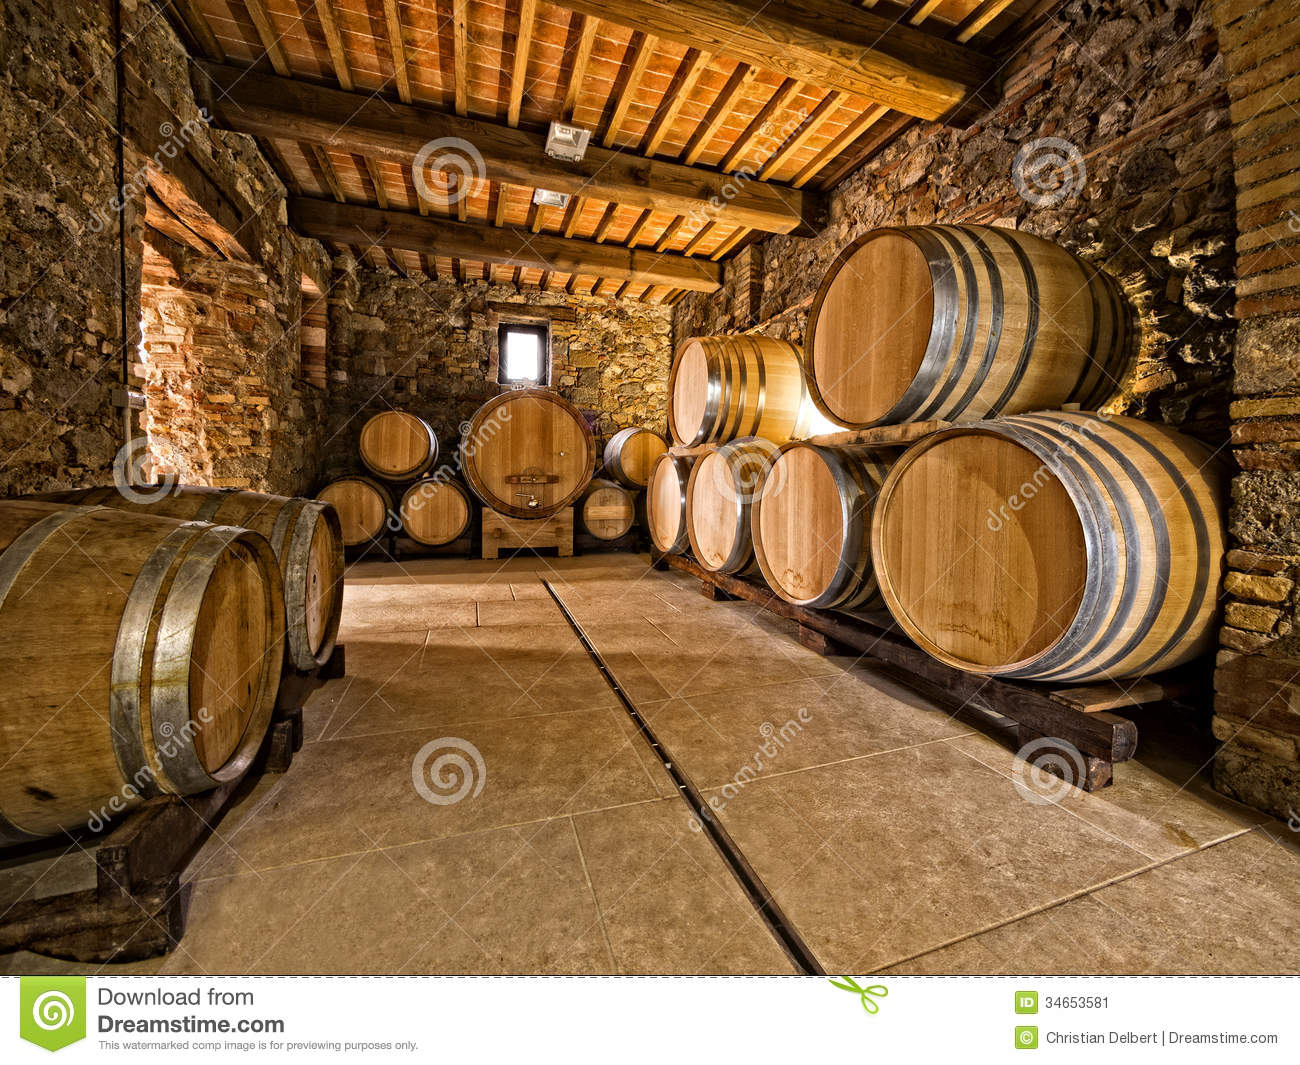 oak wine barrels stock image image 34653581. Black Bedroom Furniture Sets. Home Design Ideas